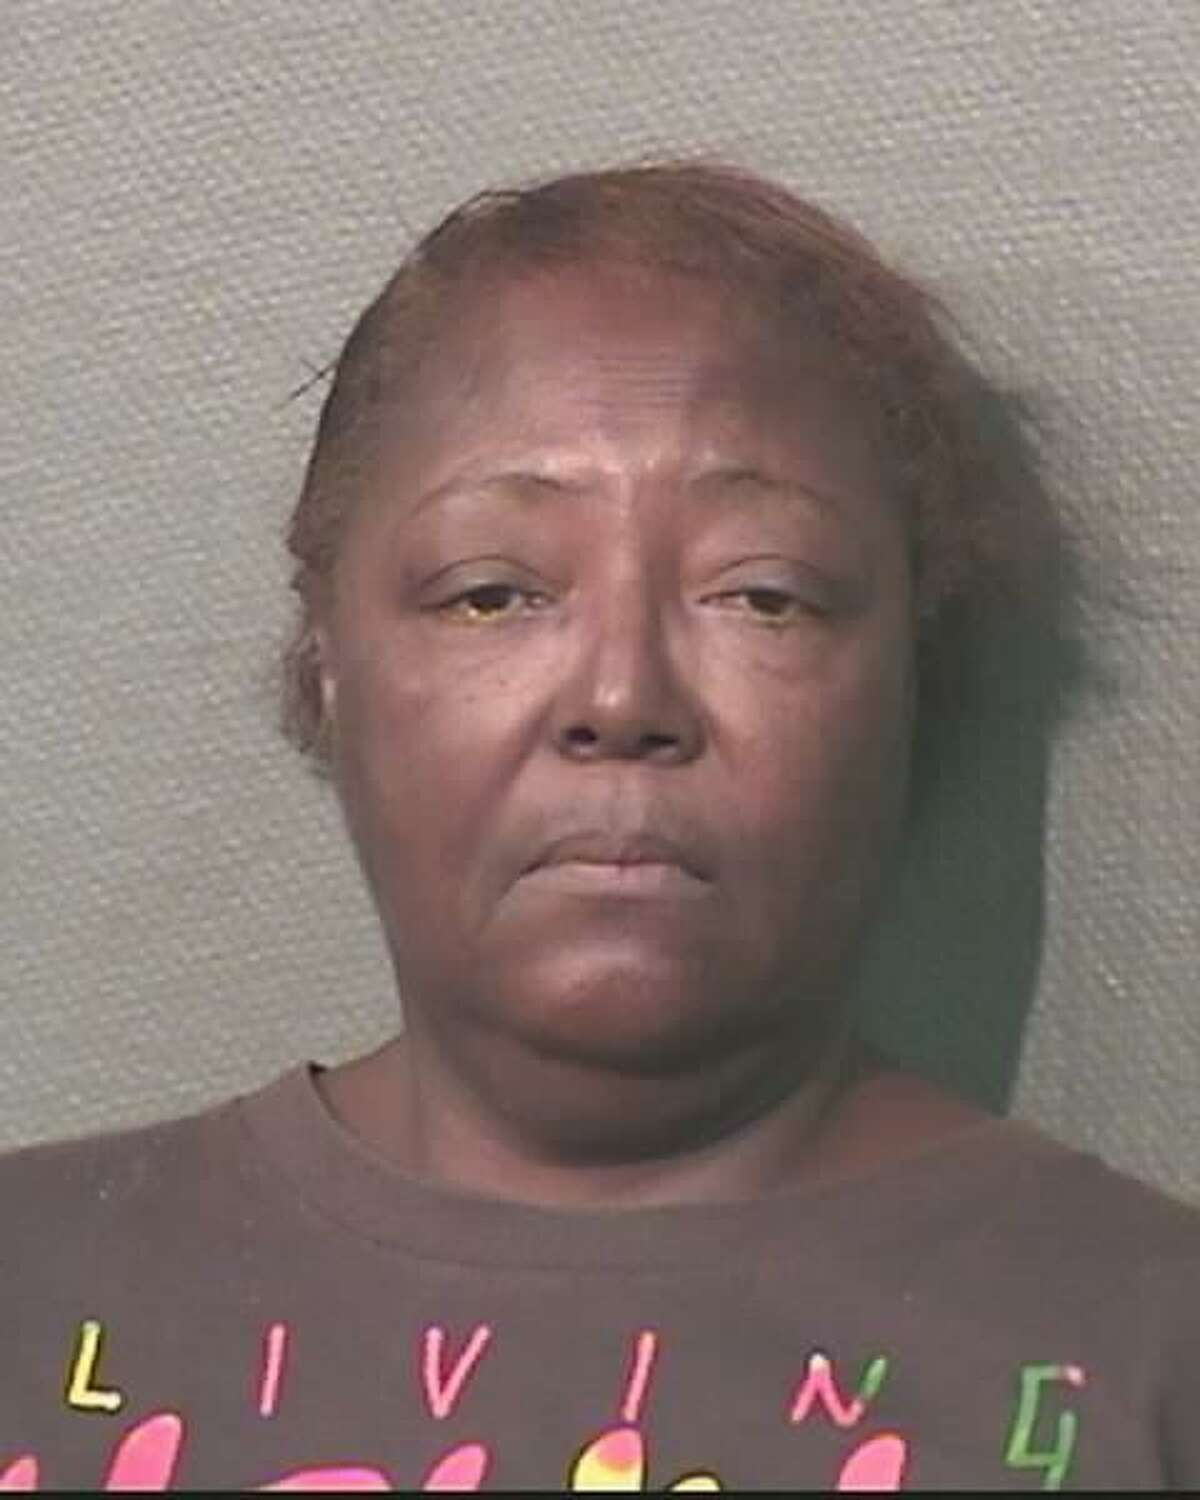 Sheila Smith, is wanted by Houston Crime Stoppers on a charge of aggravated assault with a deadly weapon.